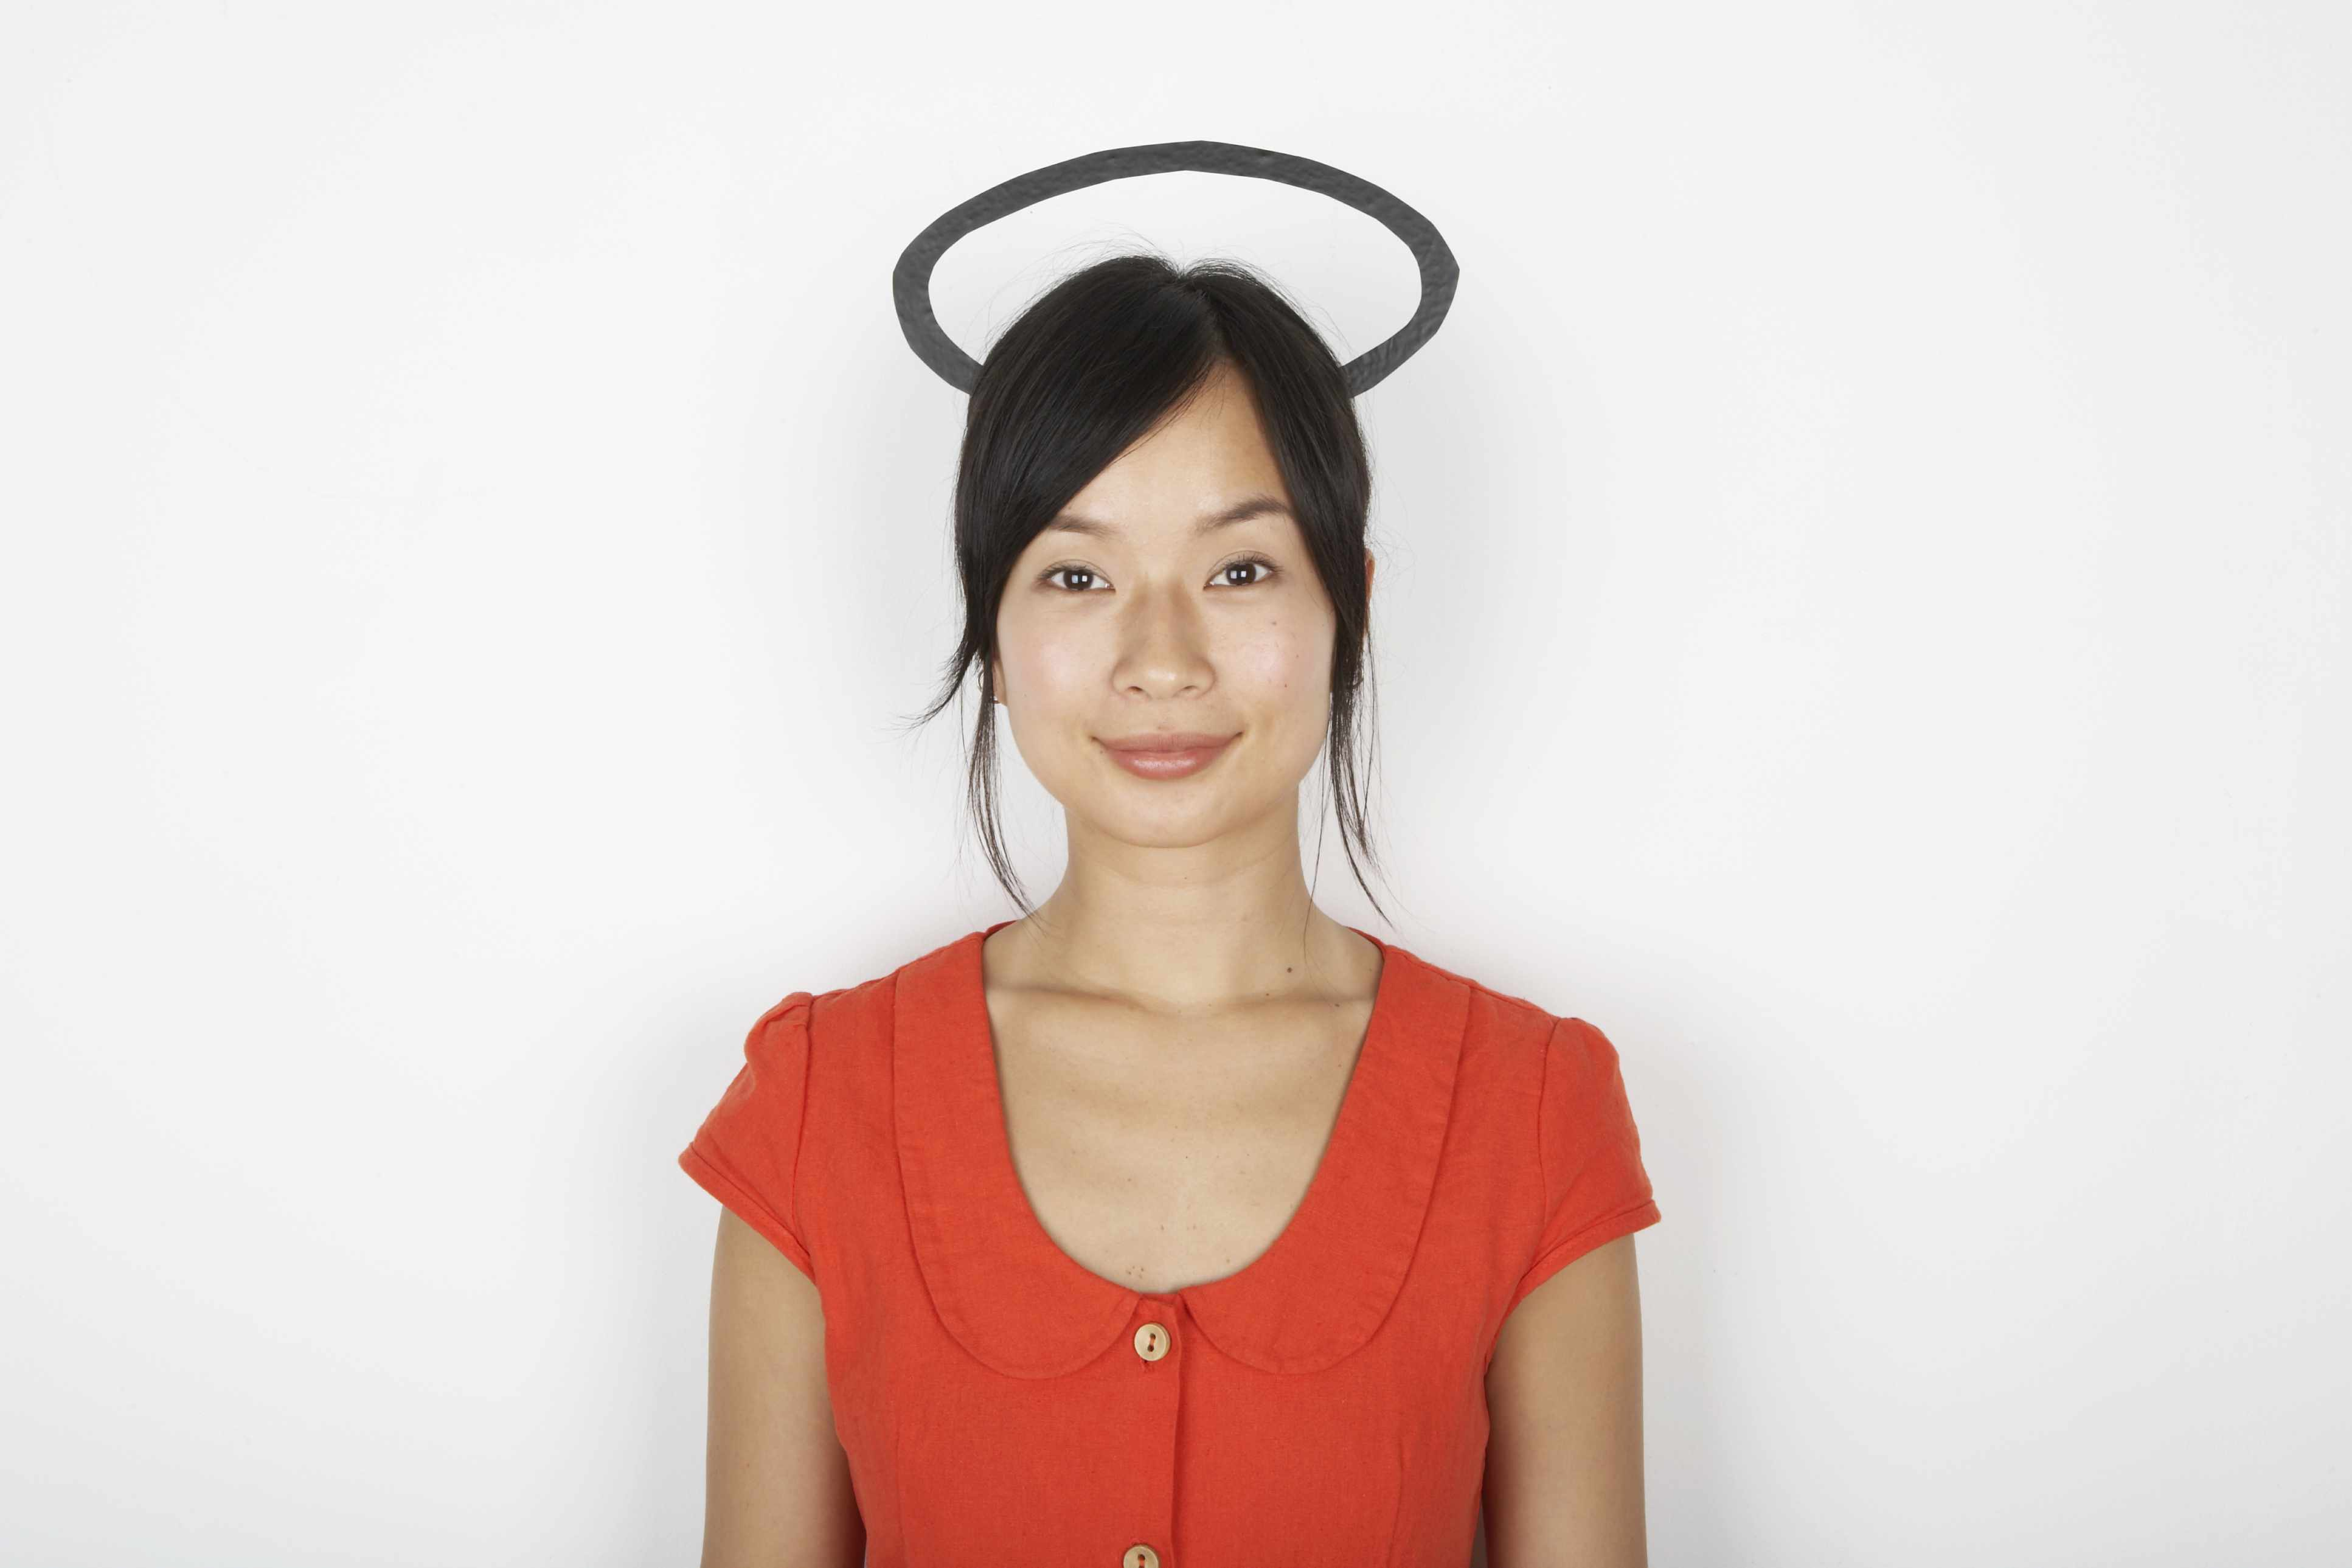 woman with halo